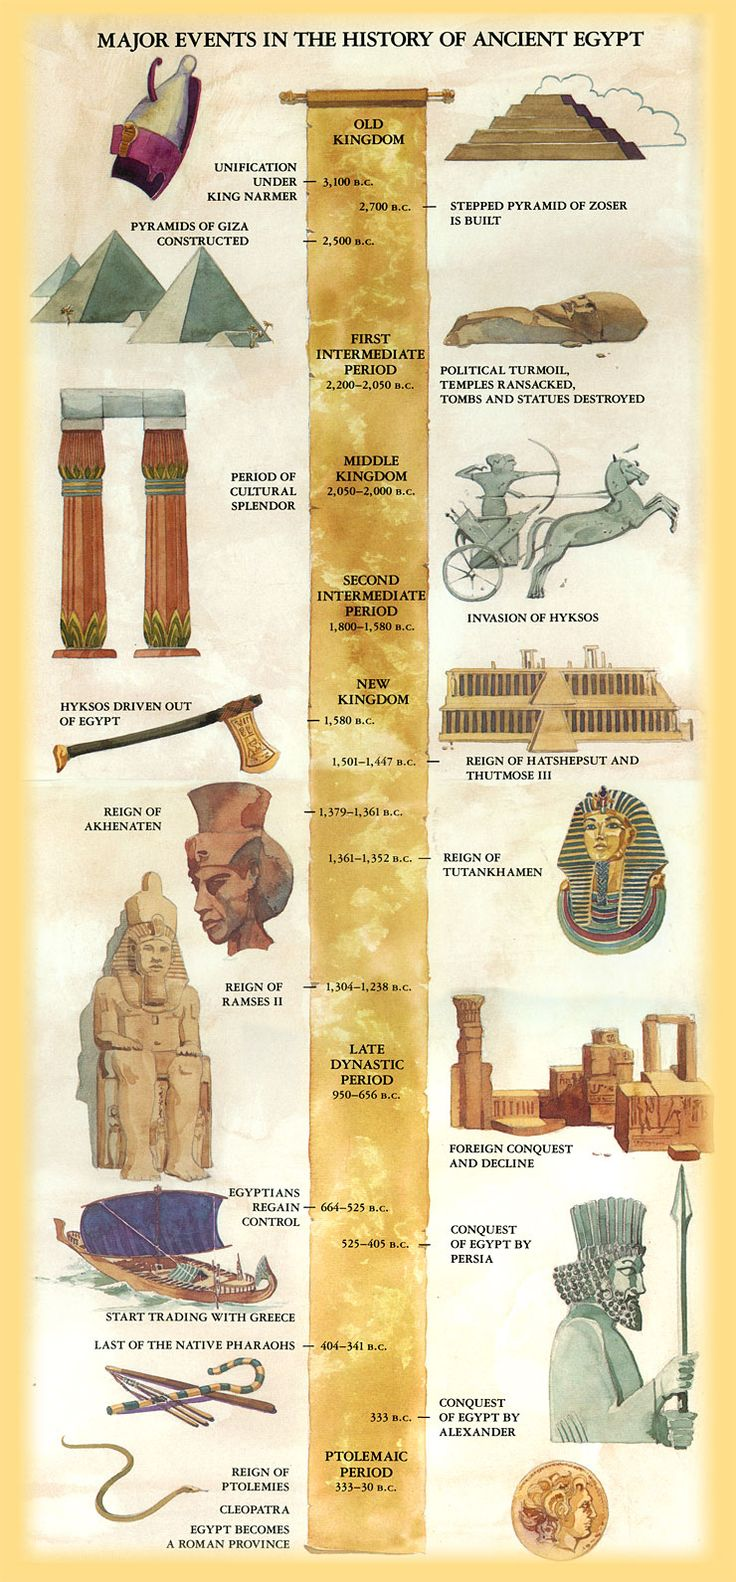 ULTIMATE EGYPT TIMELINE Nice Graphic Dates Are Standard Too Old To Correc